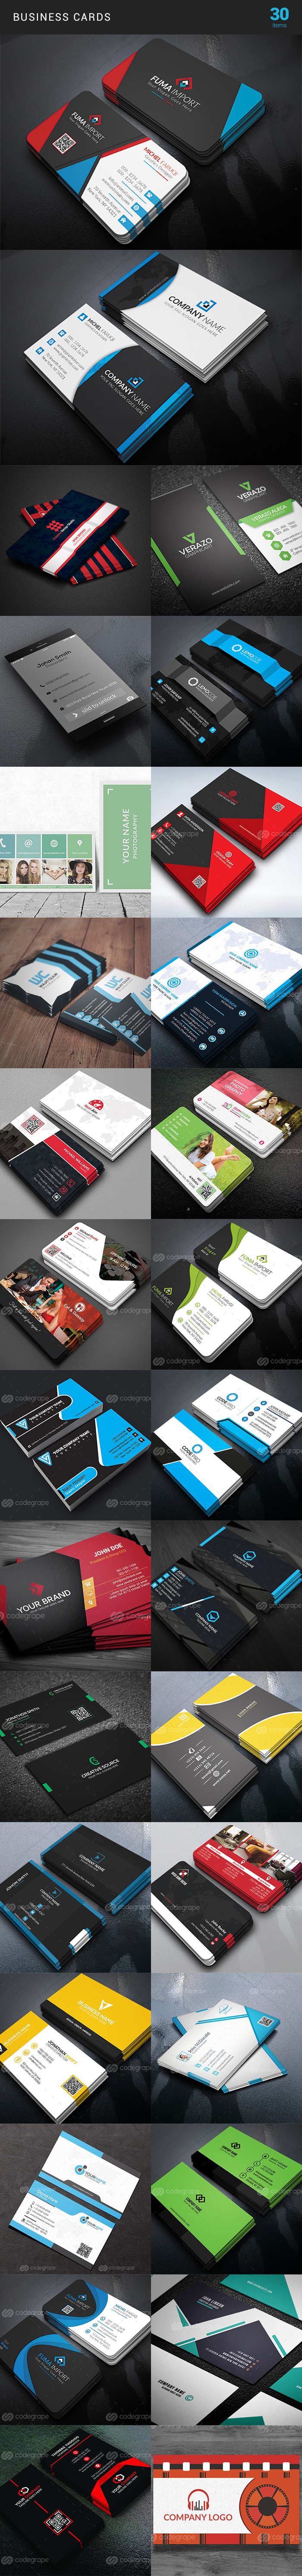 Elegant Print Templates Bundle with 100 Items - Only $19 - business card